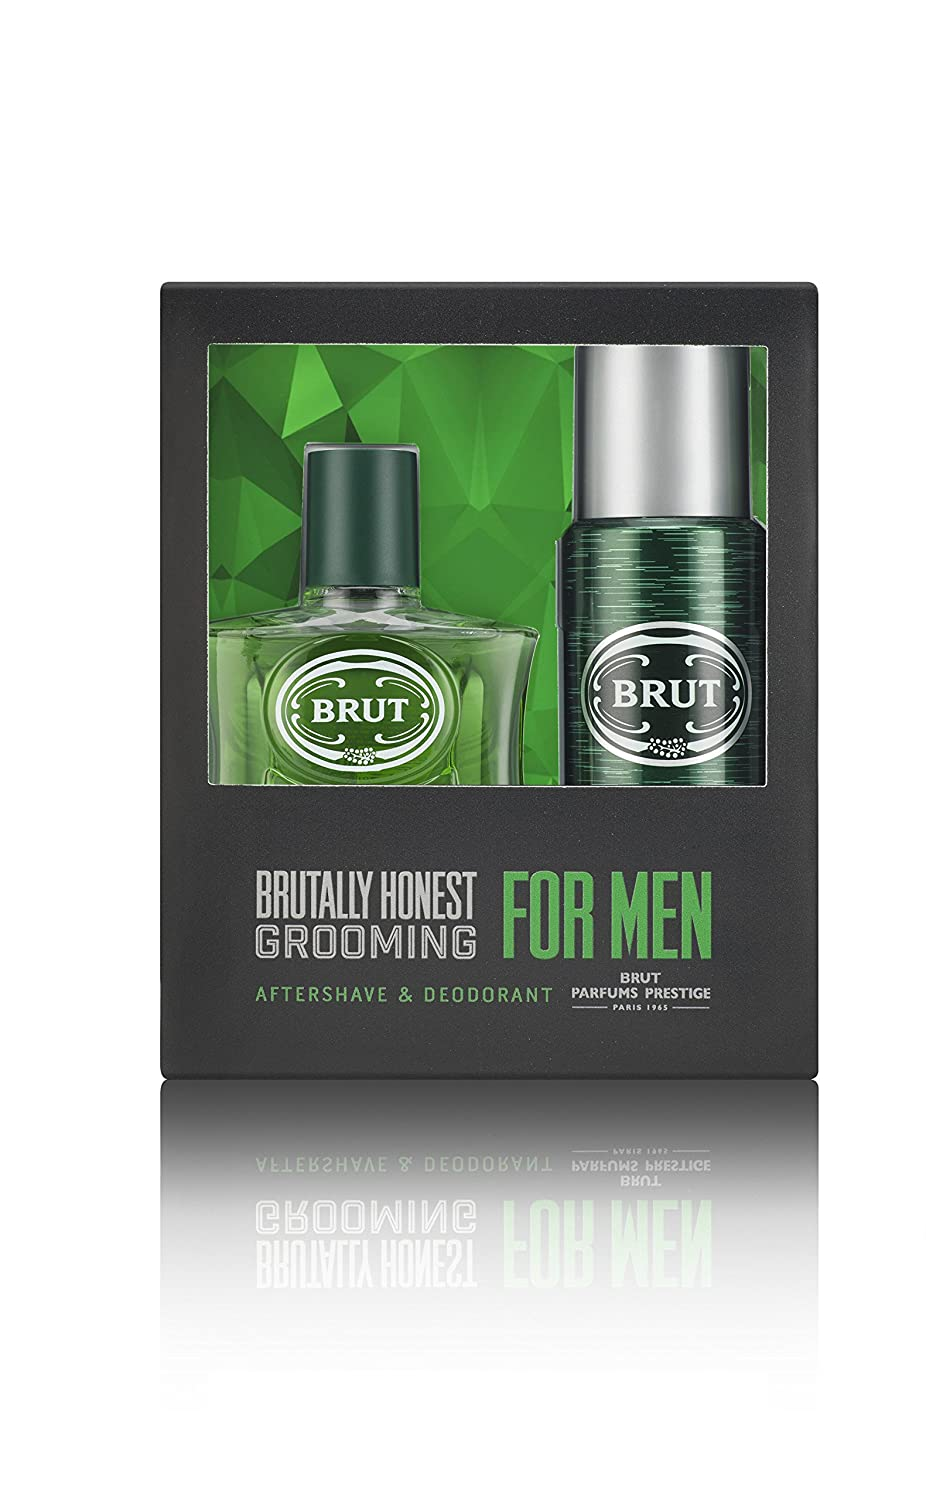 Brut, Set regalo da Uomo, include dopobarba 100 ml + deodorante spray 200 ml BRU-BRU-M-05-100-04